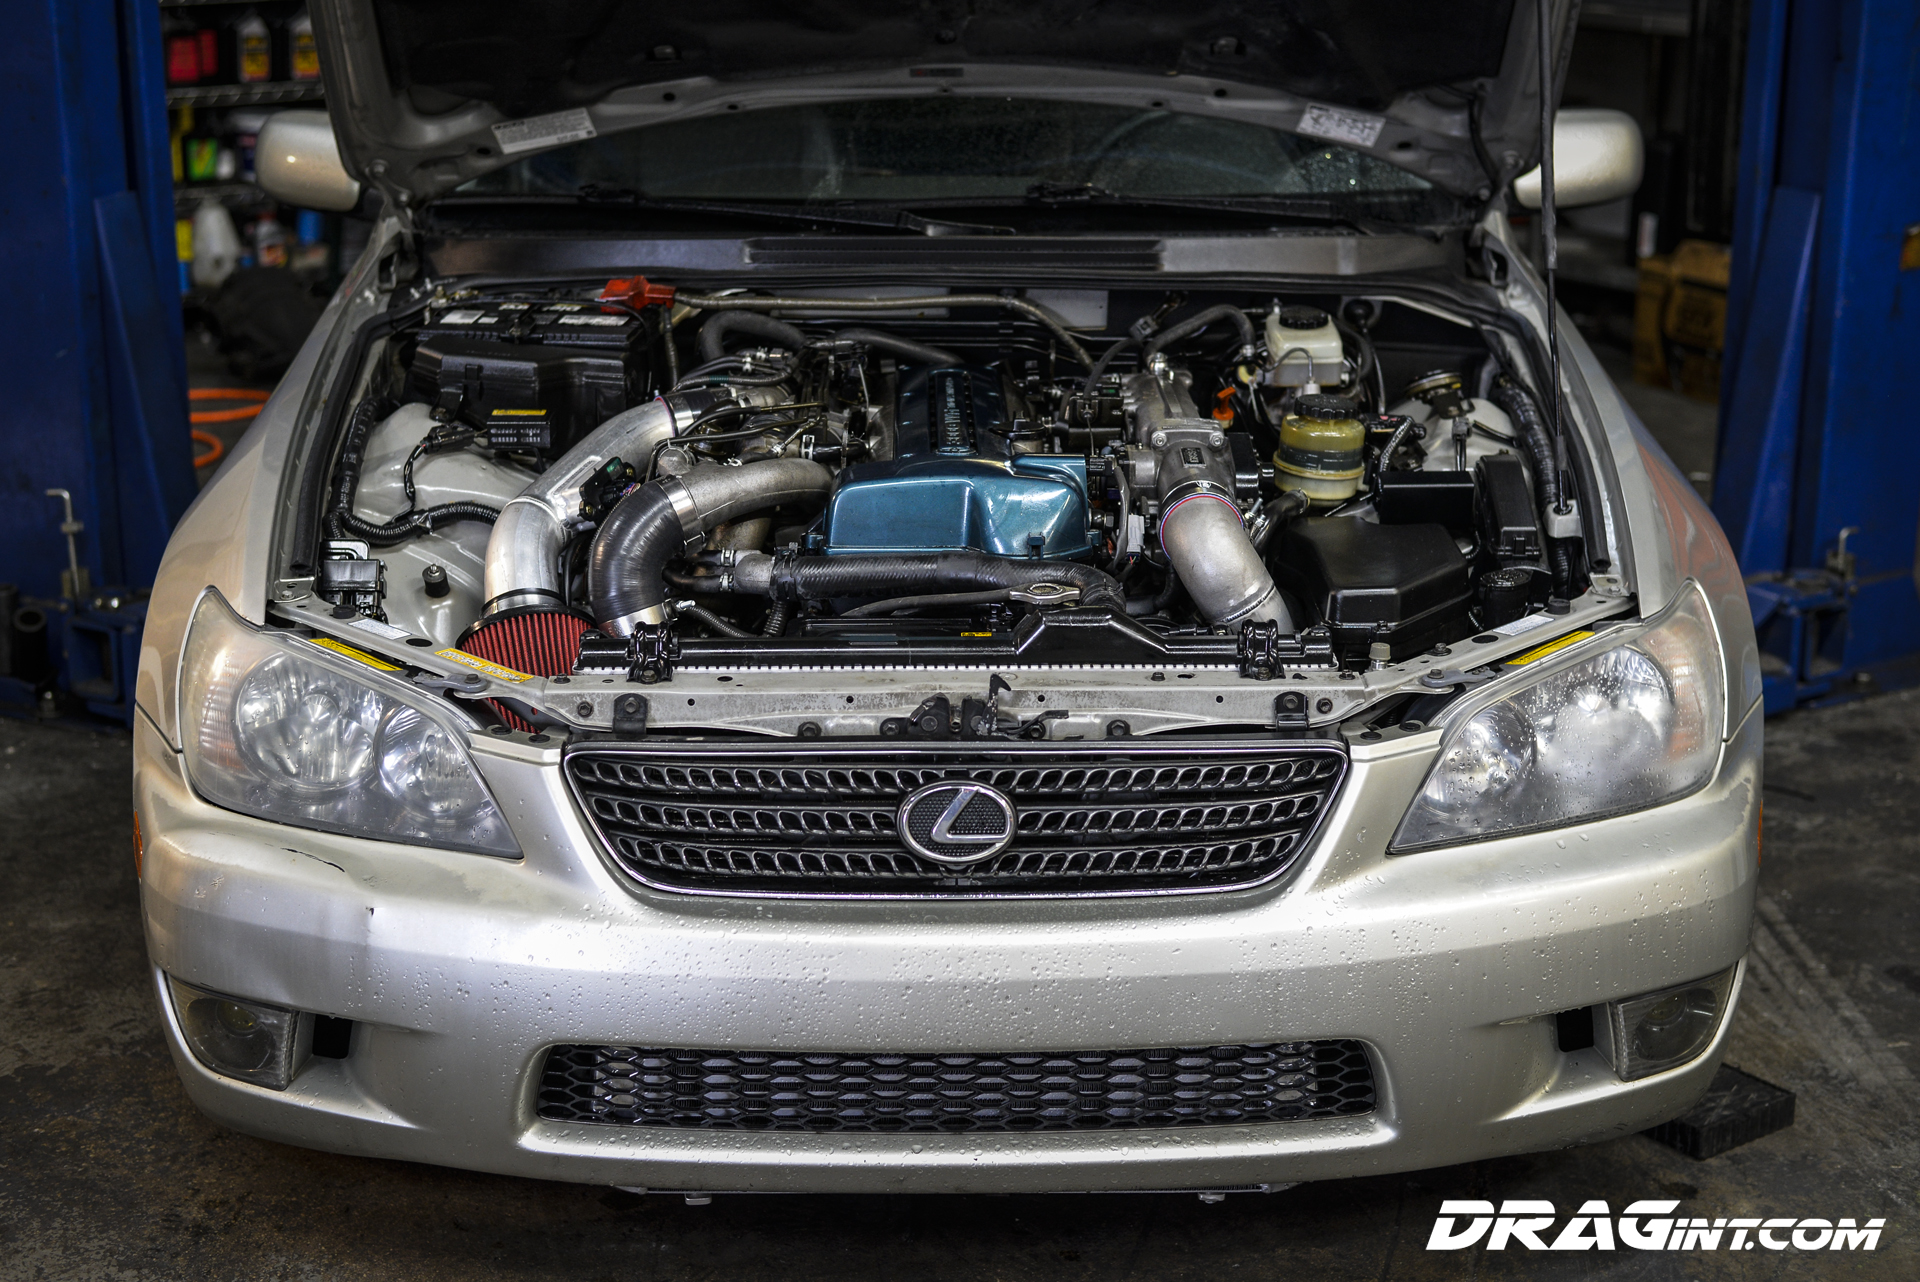 DRAGint.com IS300 Twin Turbo VVTI Swap 2JZGTE